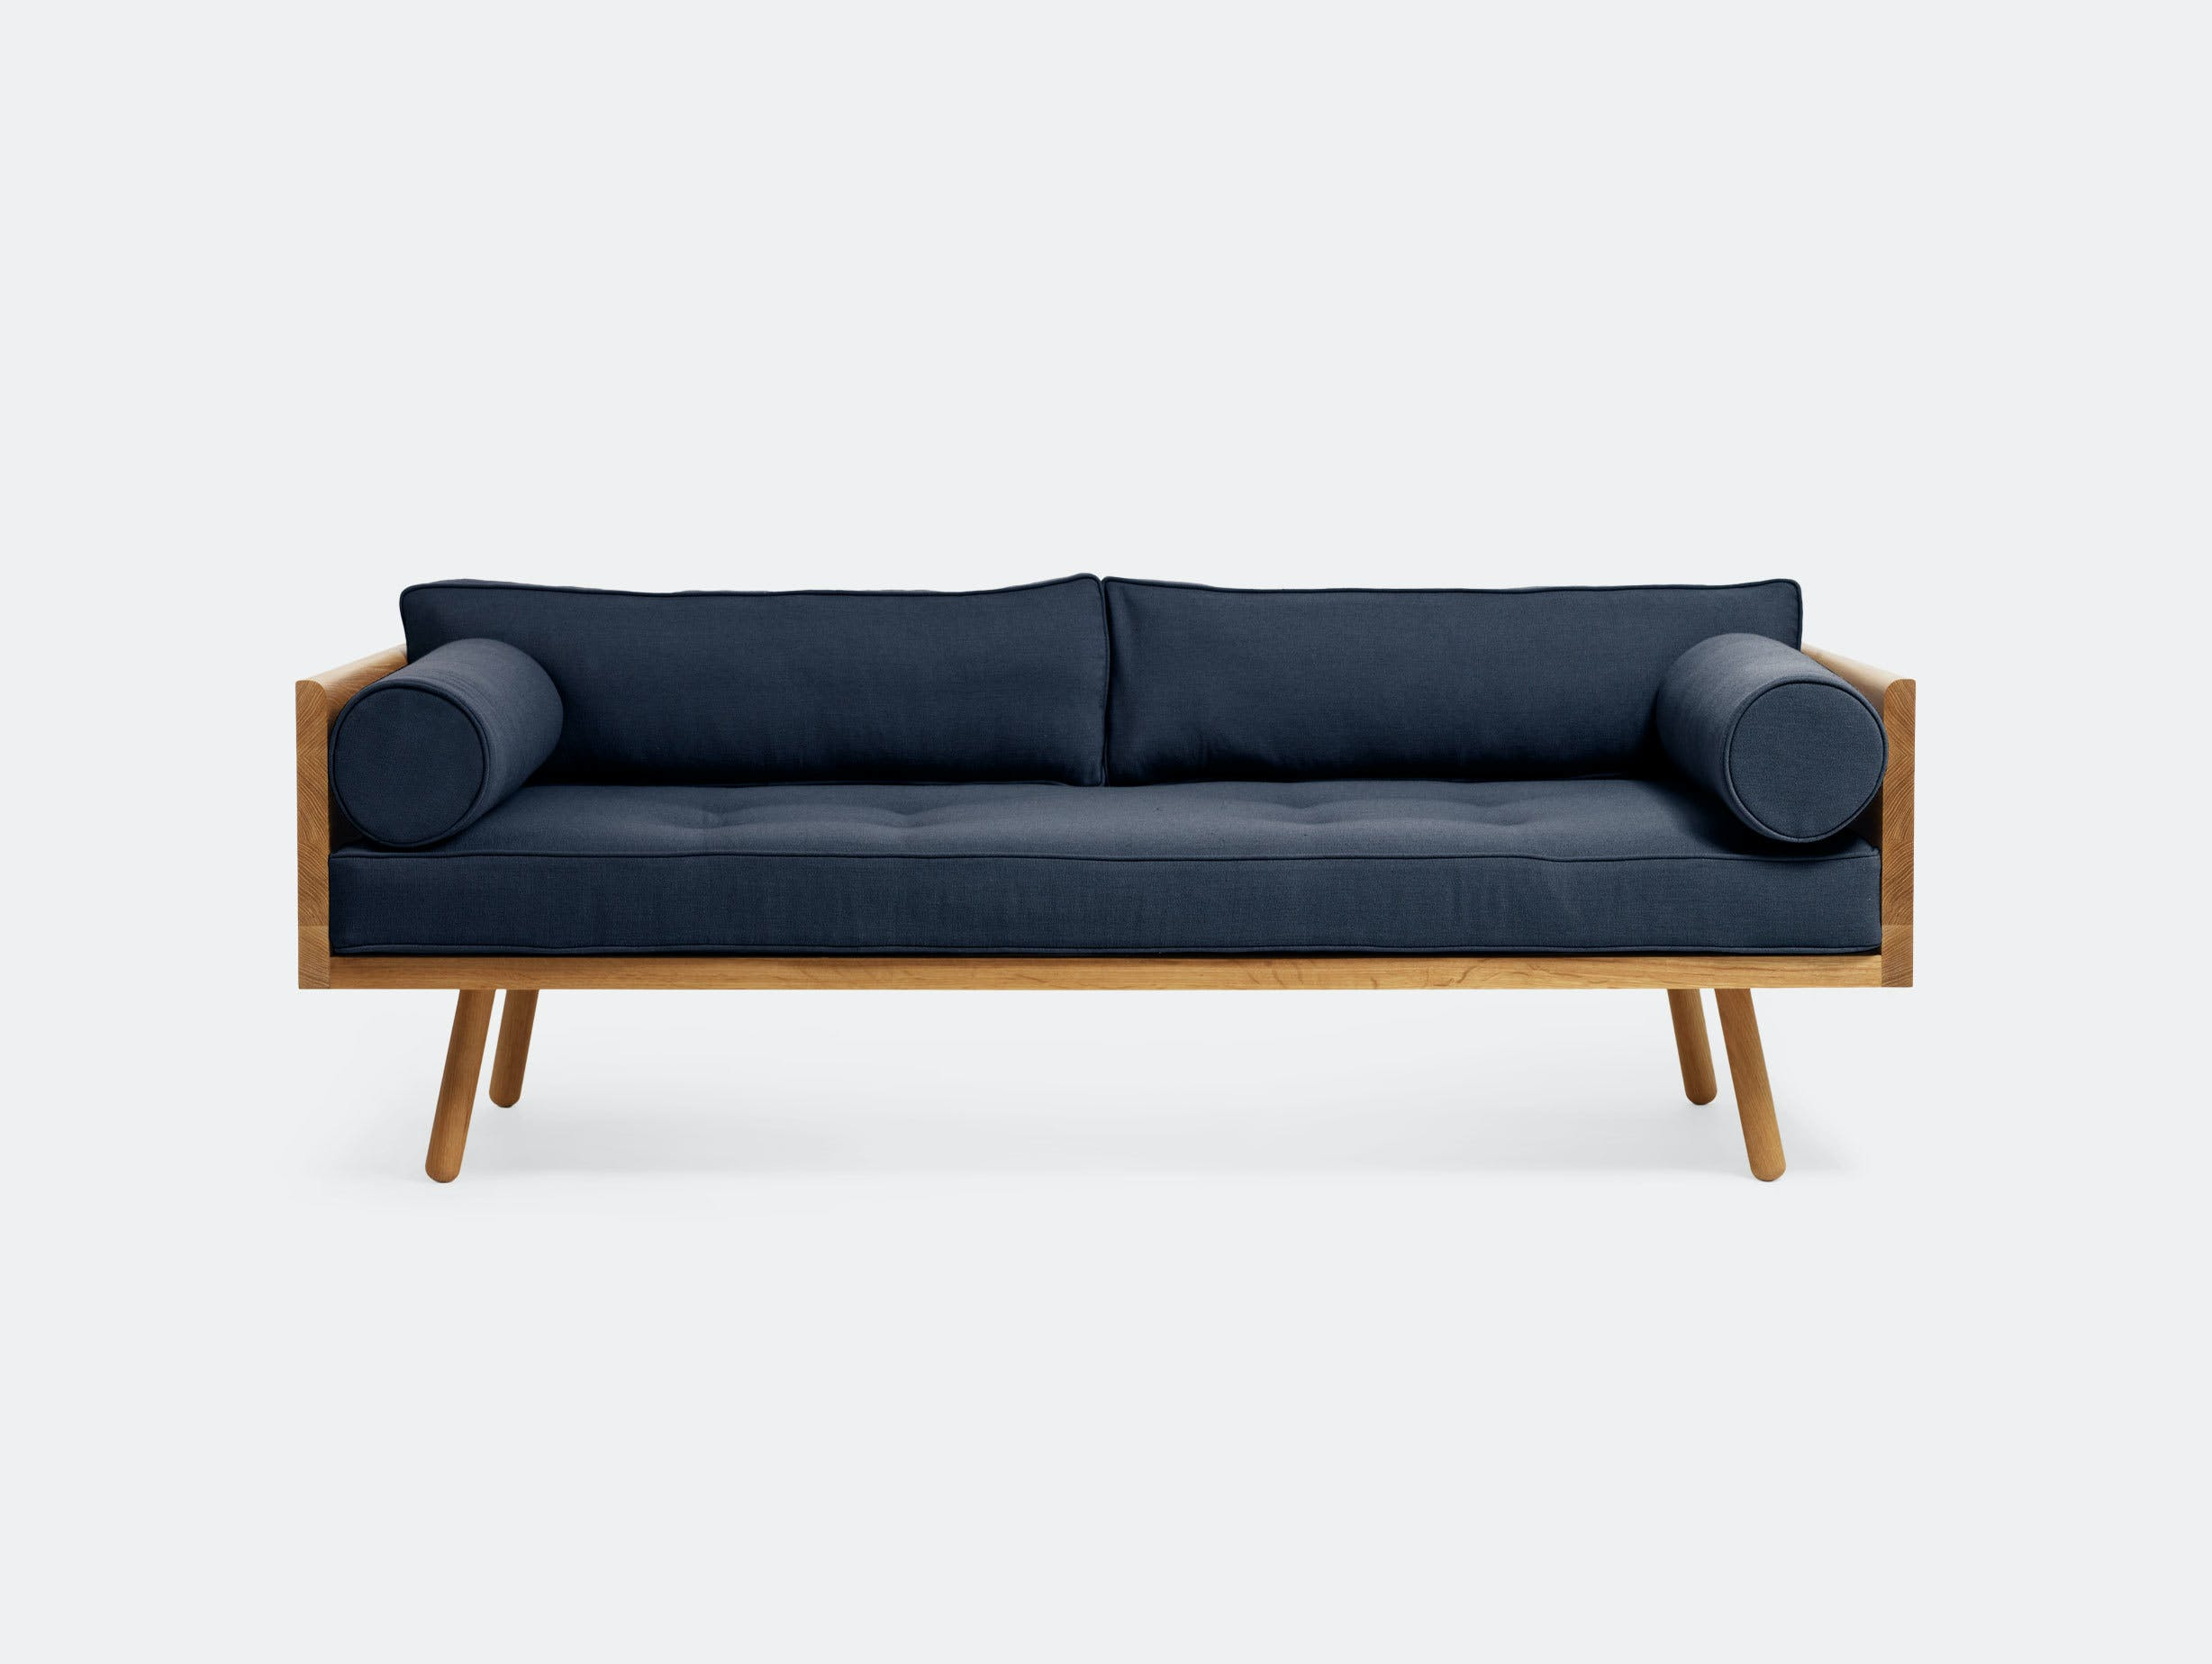 Sofa One image